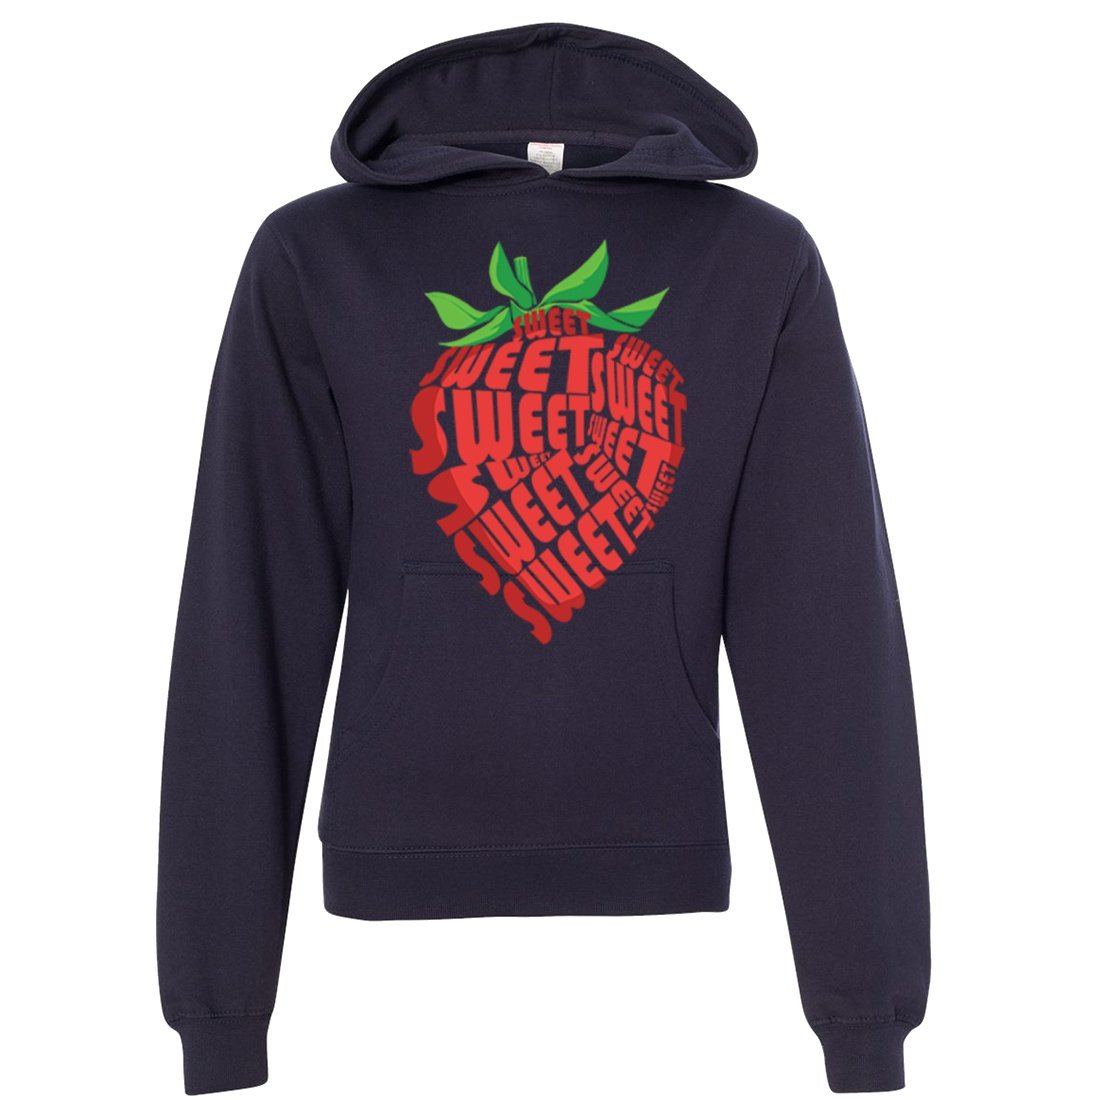 Sweet Strawberry Premium Youth Sweatshirt Hoodie